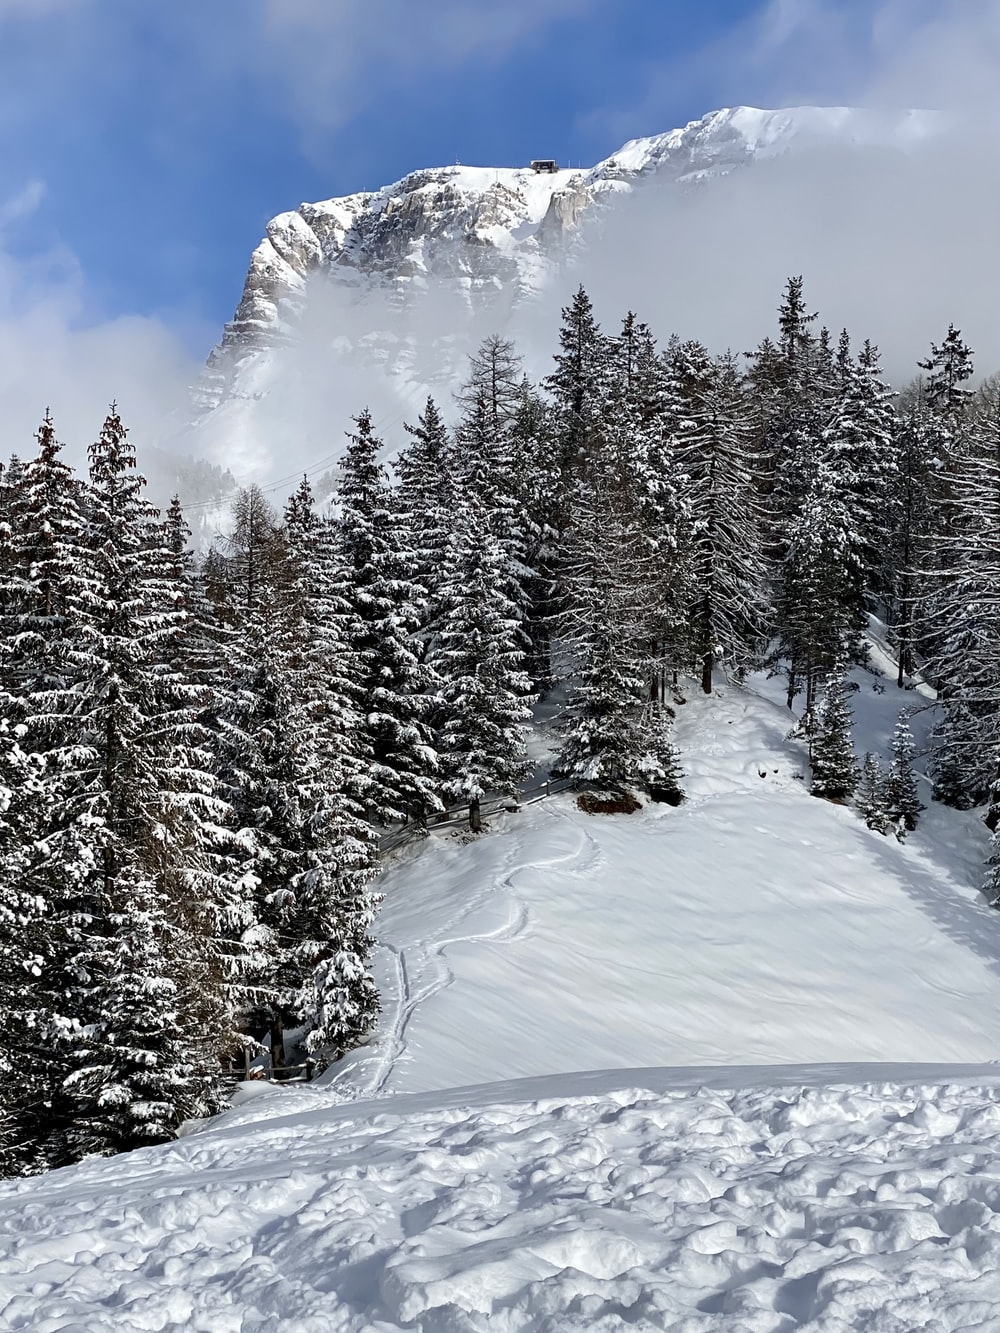 green pine trees on snow covered ground under blue sky and white clouds during daytime